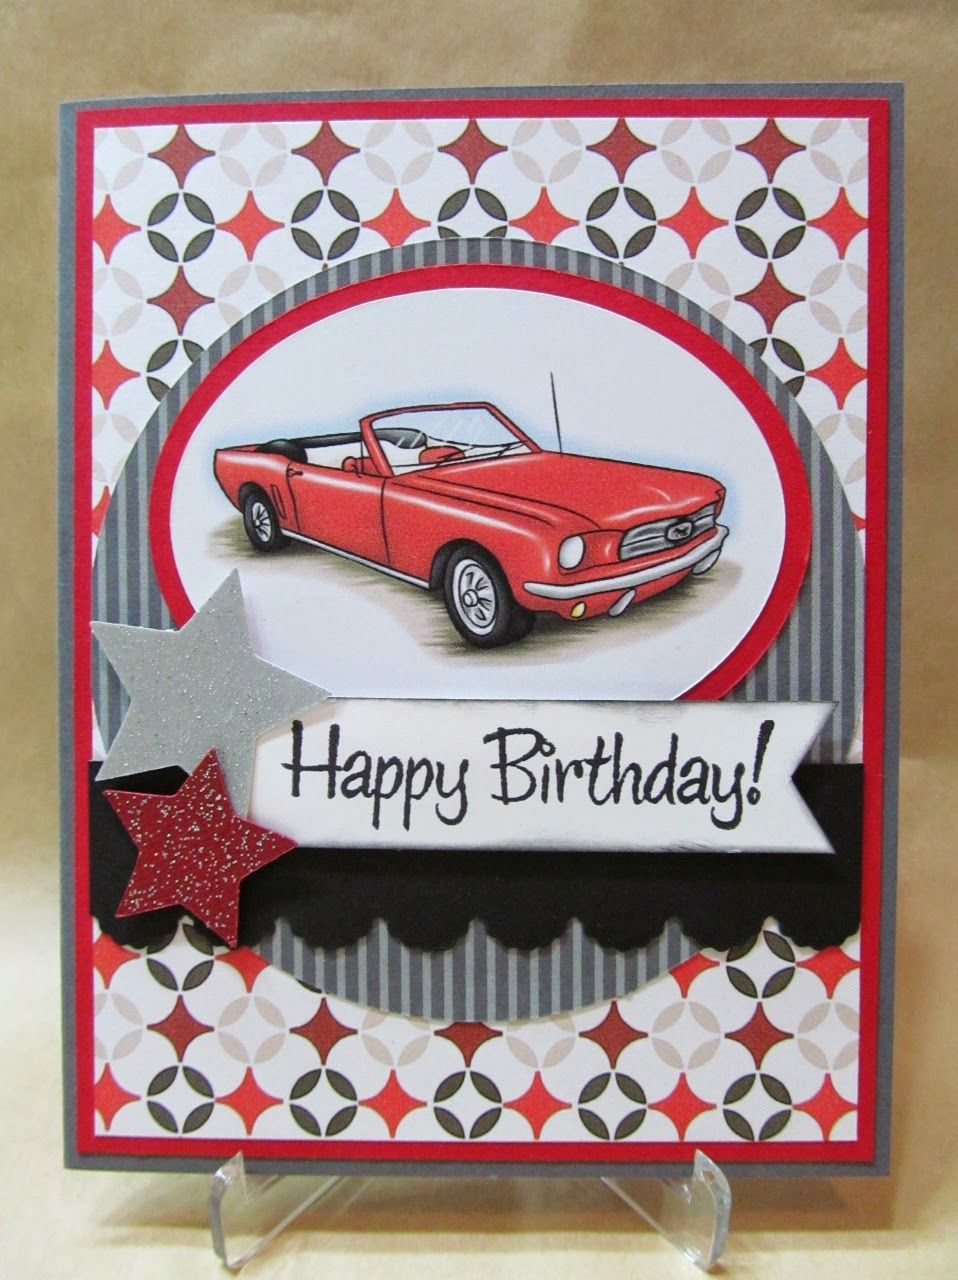 Savvy Handmade Cards Classic Car Birthday Card – Birthday Cards with Cars